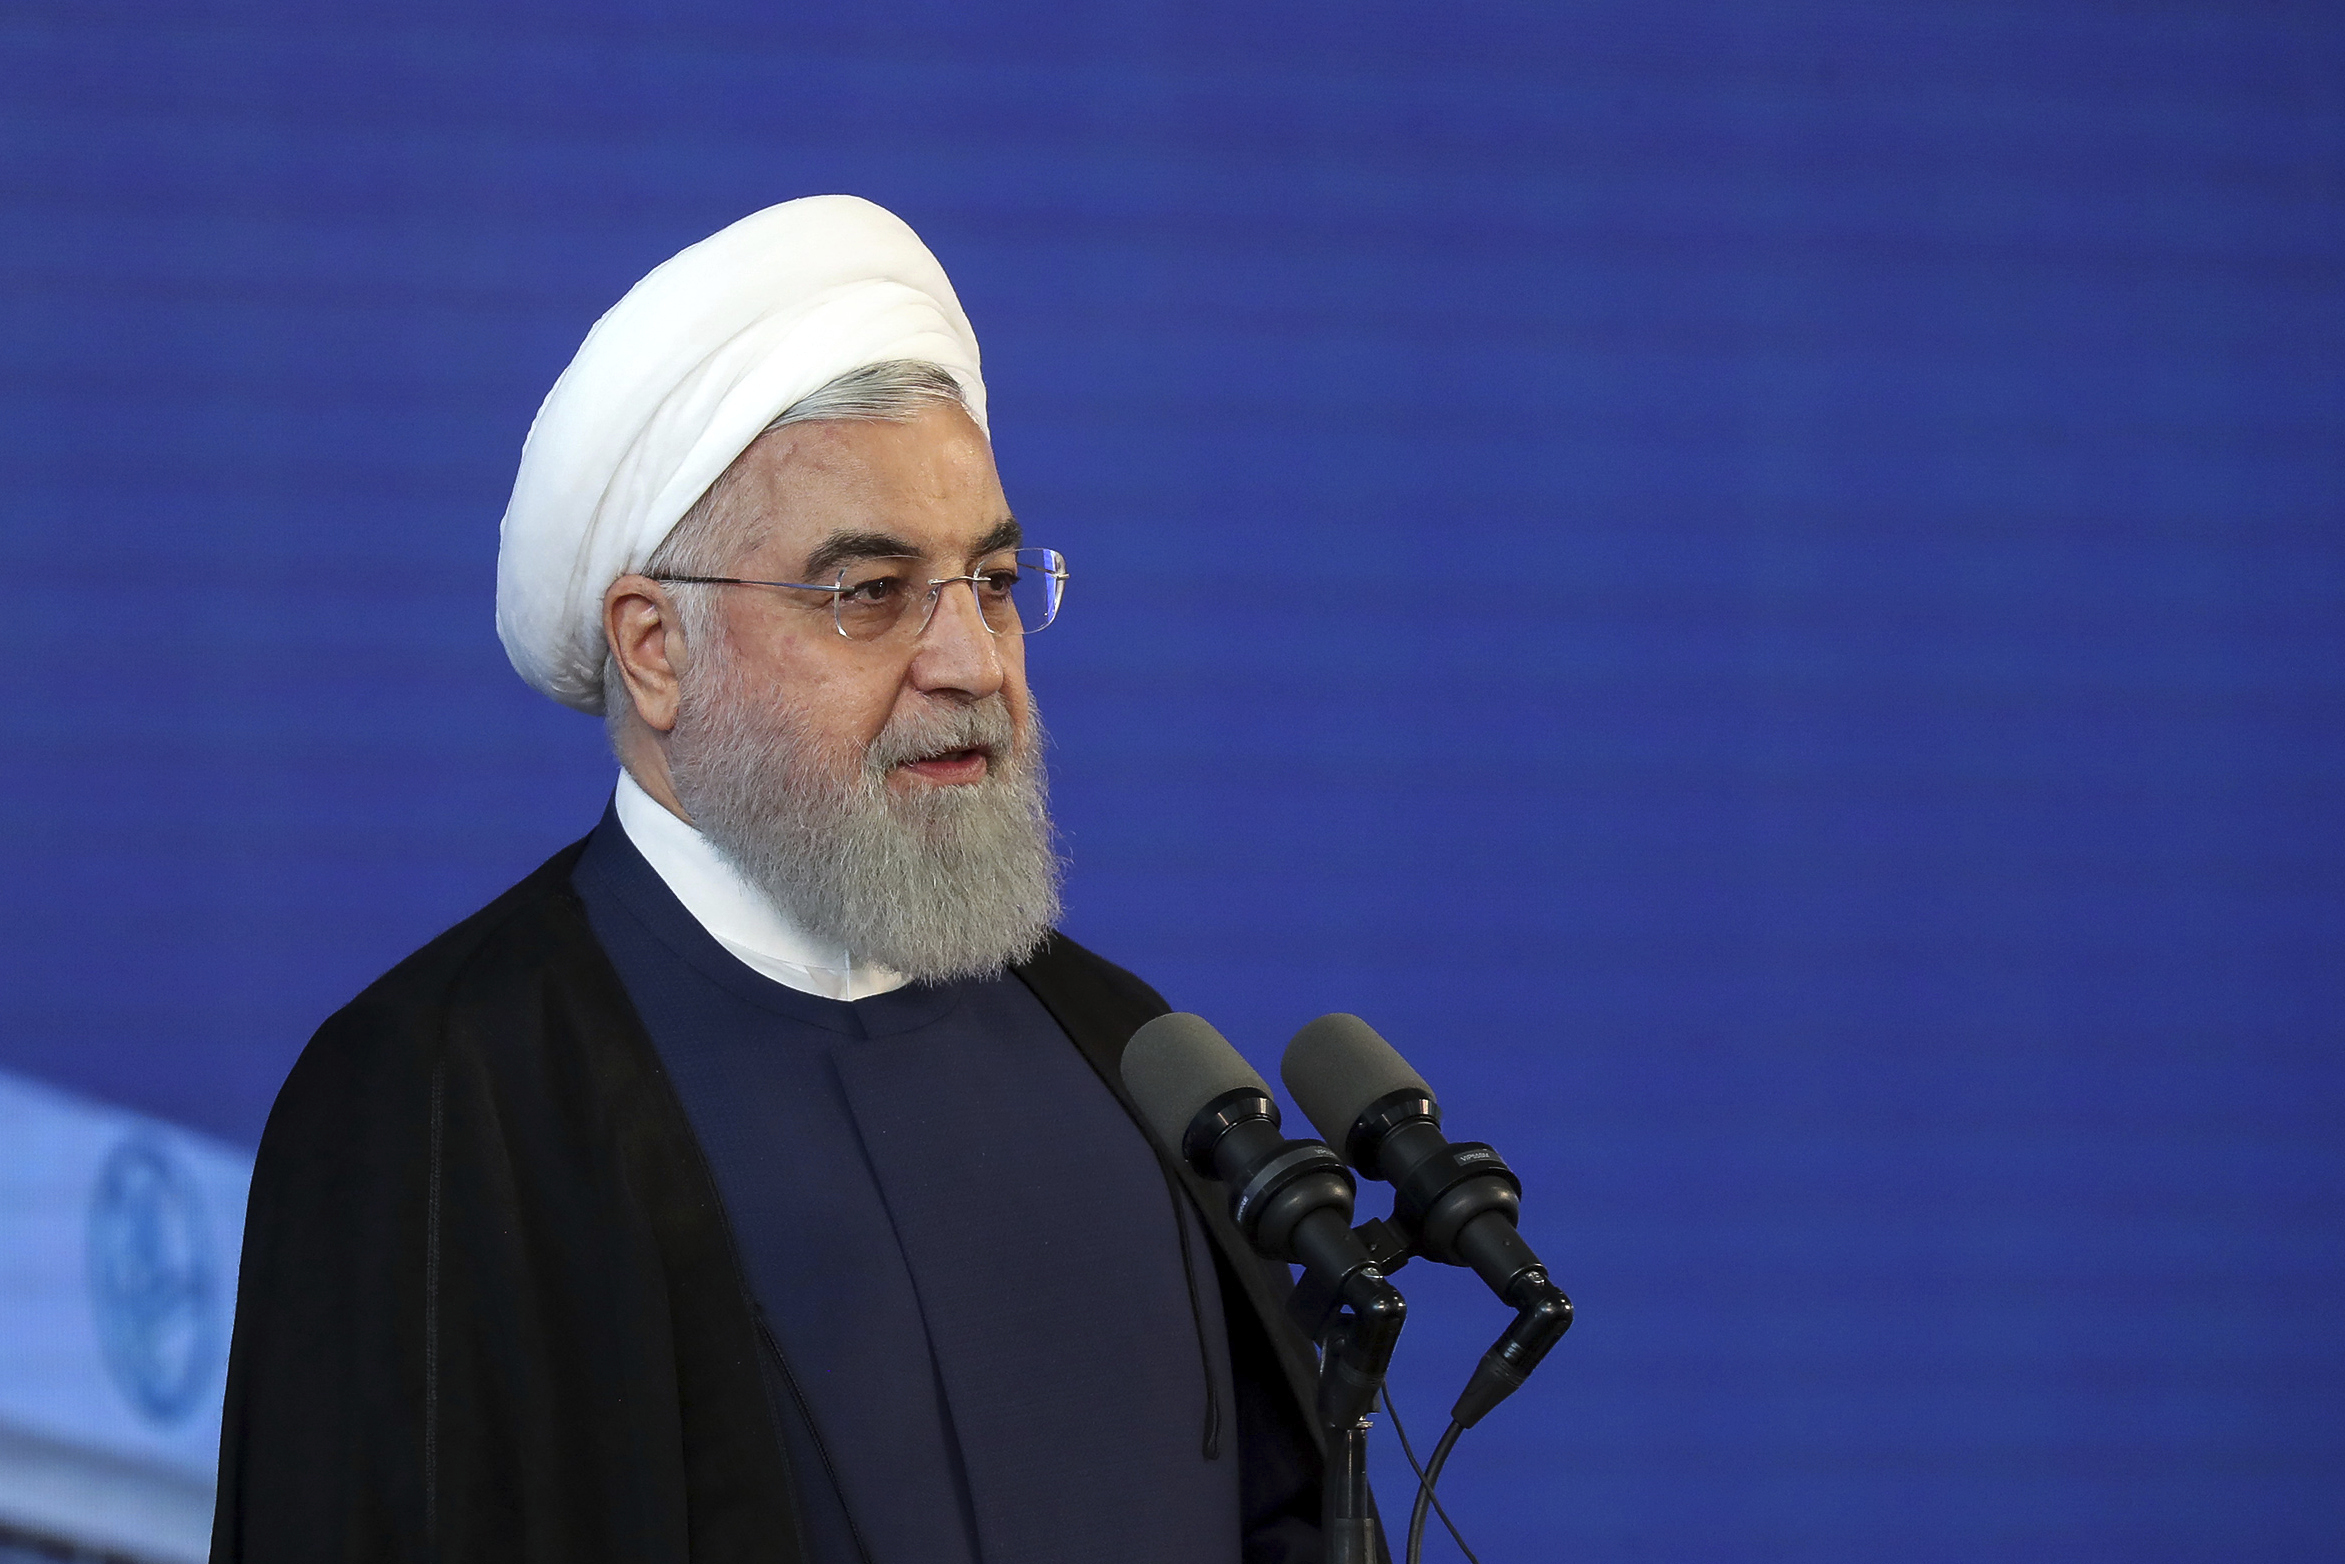 The Latest: Trump says Iran still takes threats seriously